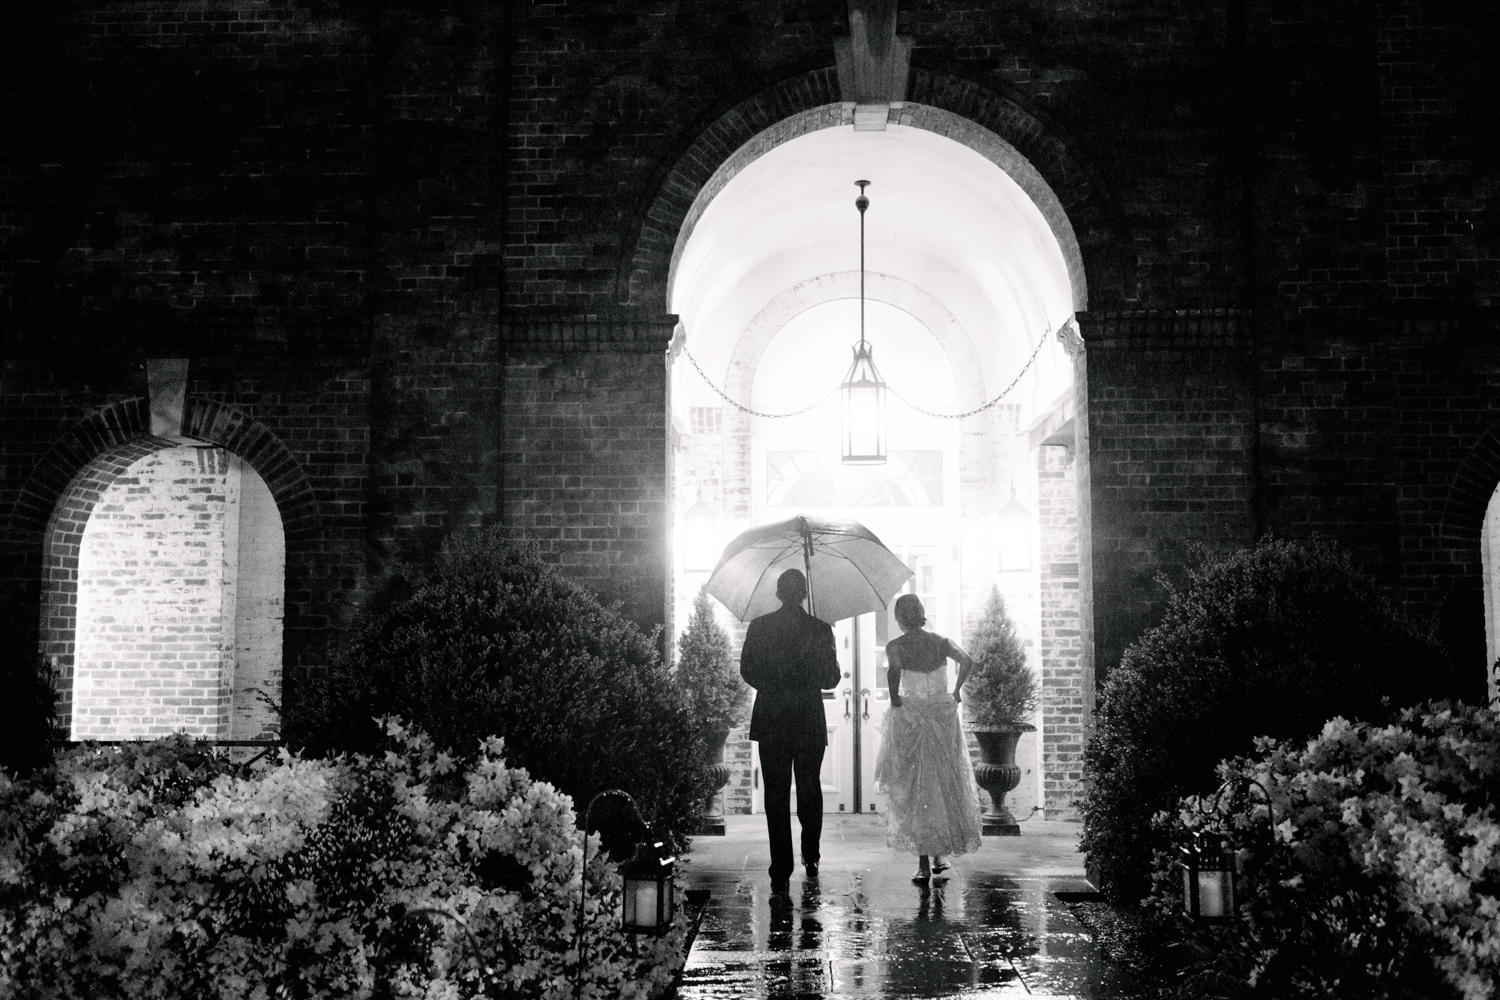 Top of 17 | Number 5 |Jessica & Colin | The New Haven Lawn Club (in the rain!)  Fuji XT2 | Fuji 23 f2  It rained on Jessica and Colin's wedding day... hard. It really didn't stop. Nor did it stop them from having one of the more memorable weddings of my season. Rain is what you make it. It poured on mine and Corey's wedding day, but we had a blast. In this photo, after we had finished some rainy evening portraits, I stayed back as the couple made their way inside. The photos we took were cool, but this quick and candid moment is the clear winner. I love the mood, the drama, the soaking wet pathway, the unlit candles, the way she's hiking her dress...it's everything a photo in the rain should be. If Jessica and Colin werent so willing to come stand in a downpour with me, it never would have happened. I'm so glad they did.